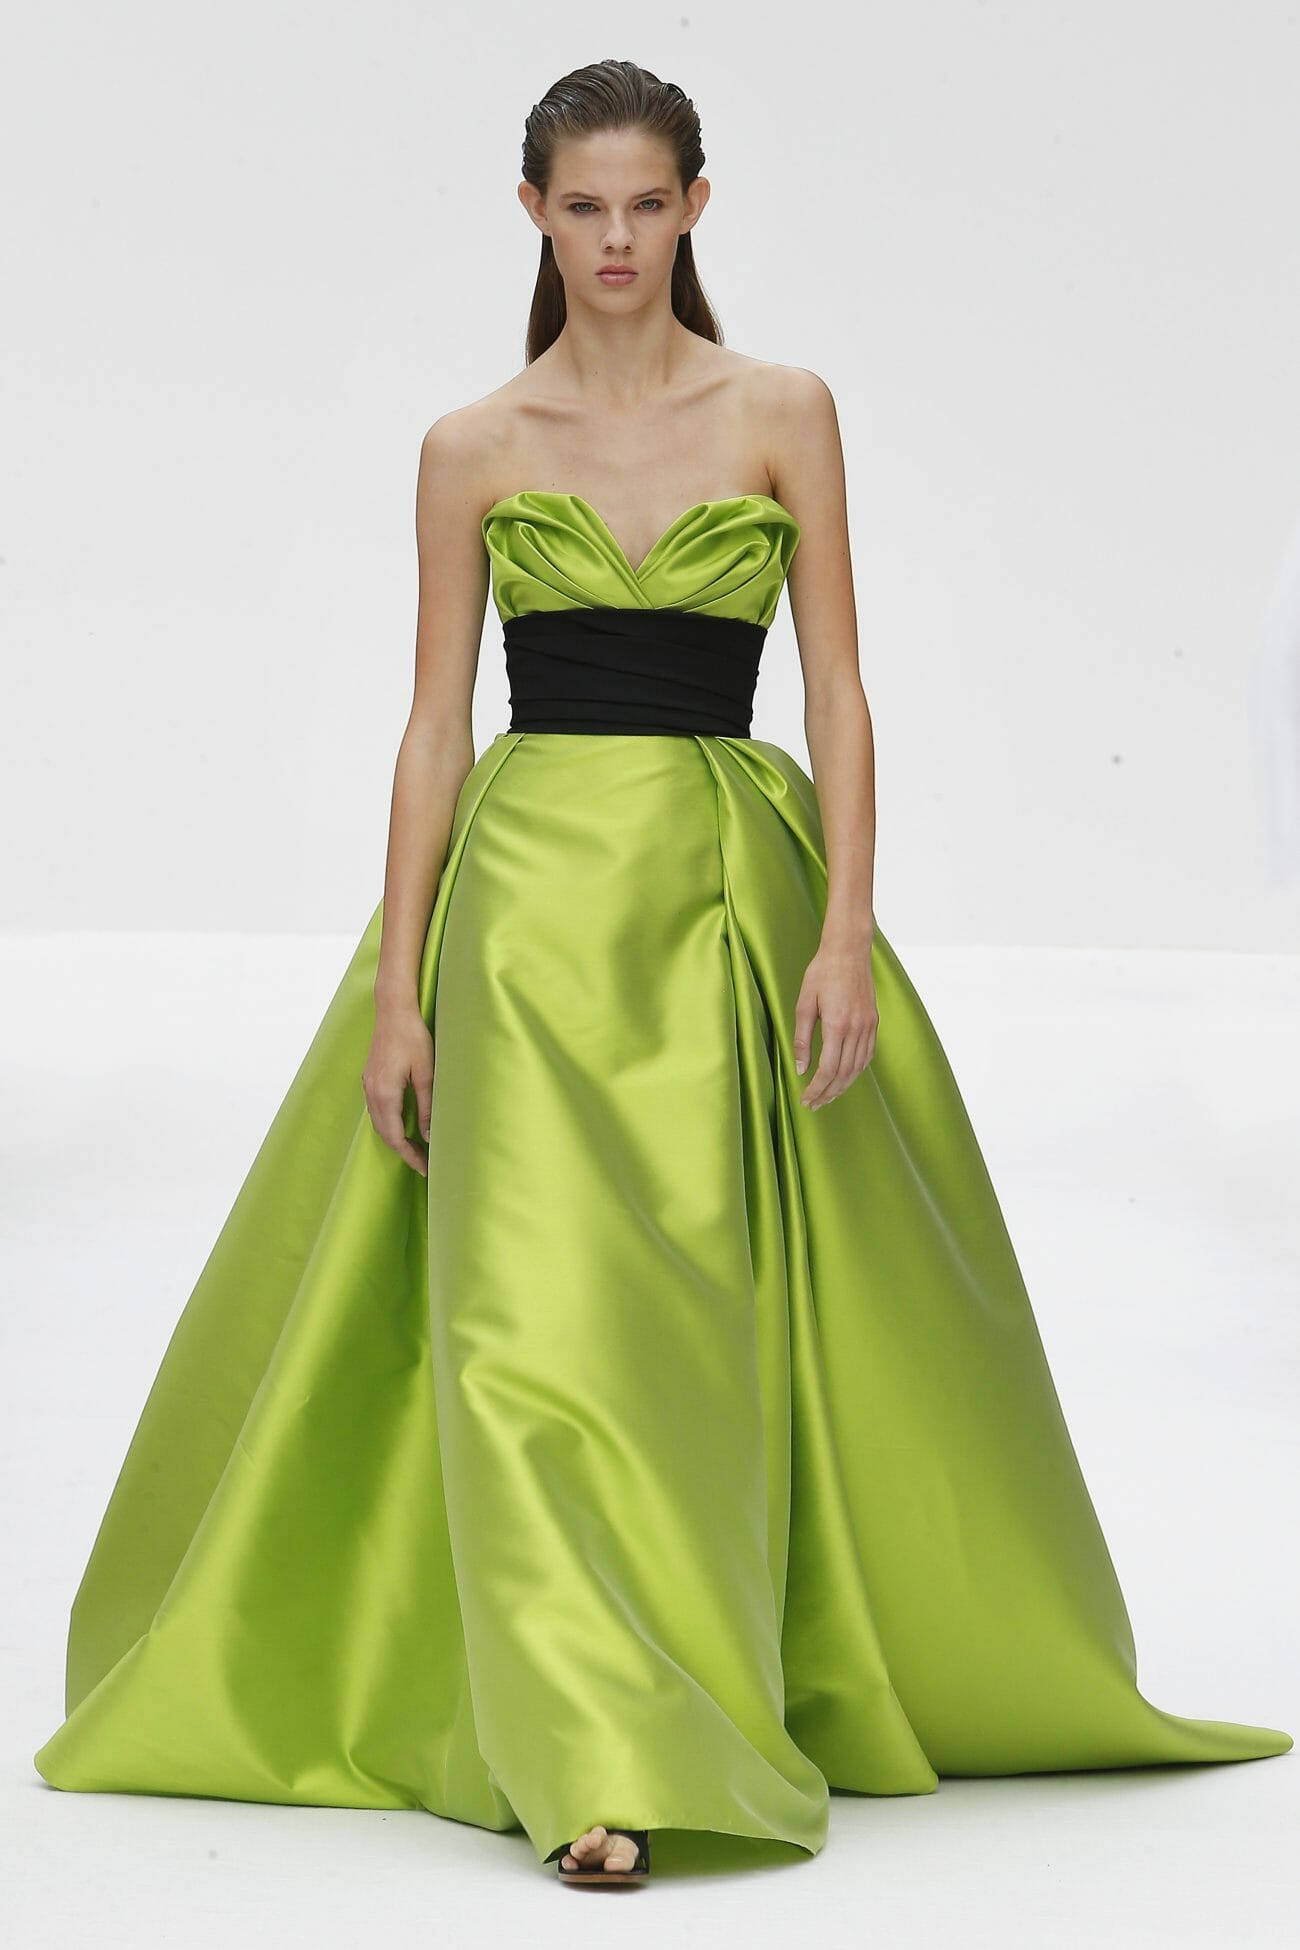 Carolina Herrera New York green dress